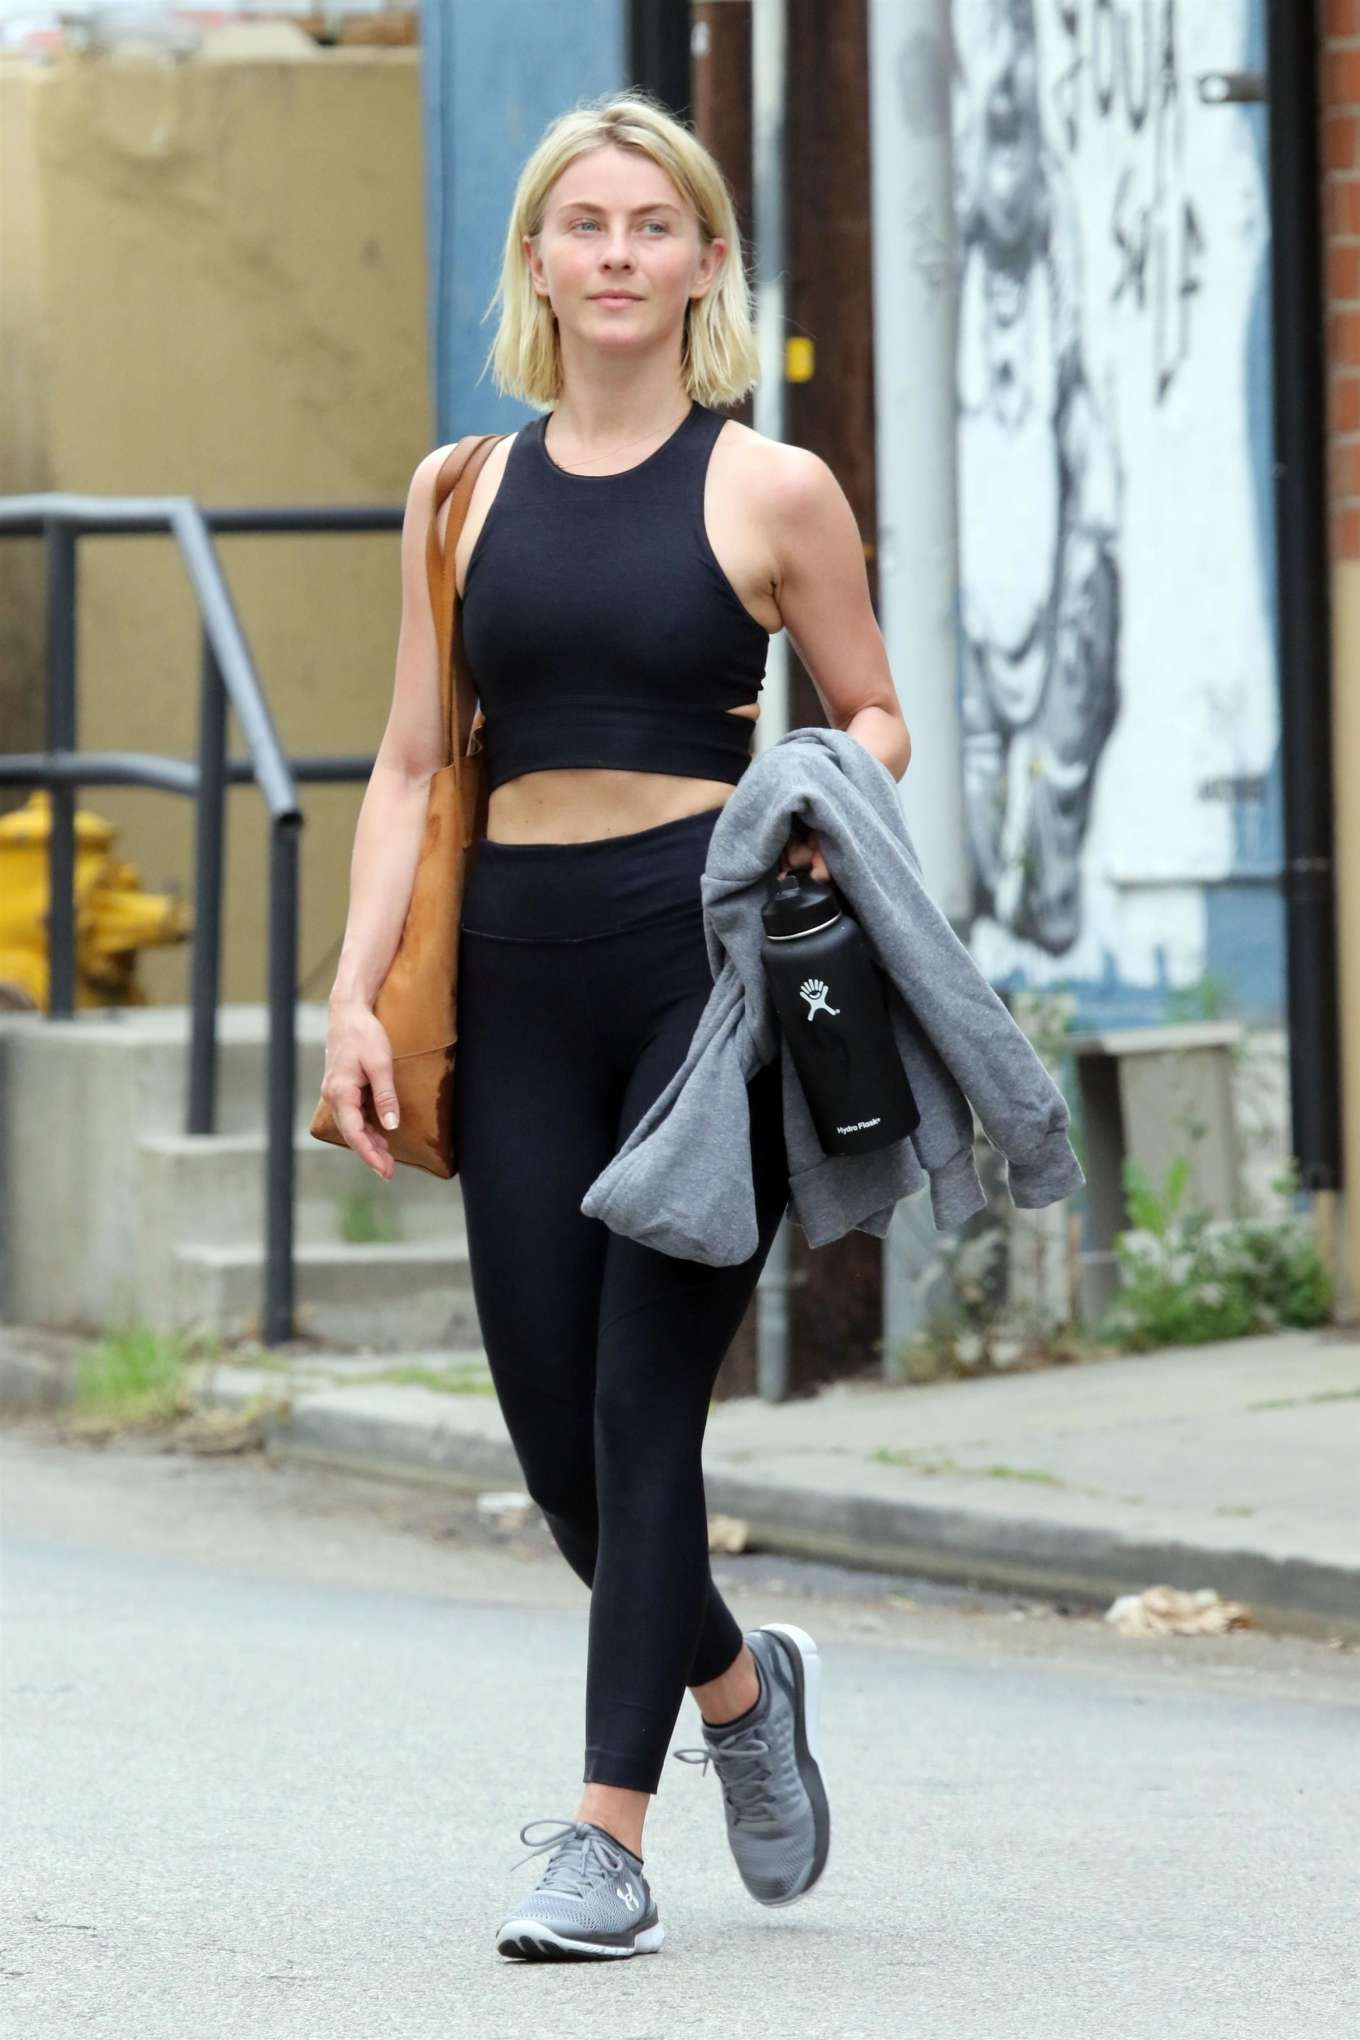 Julianne Hough 2019 : Julianne Hough: Leaving the gym in LA -17